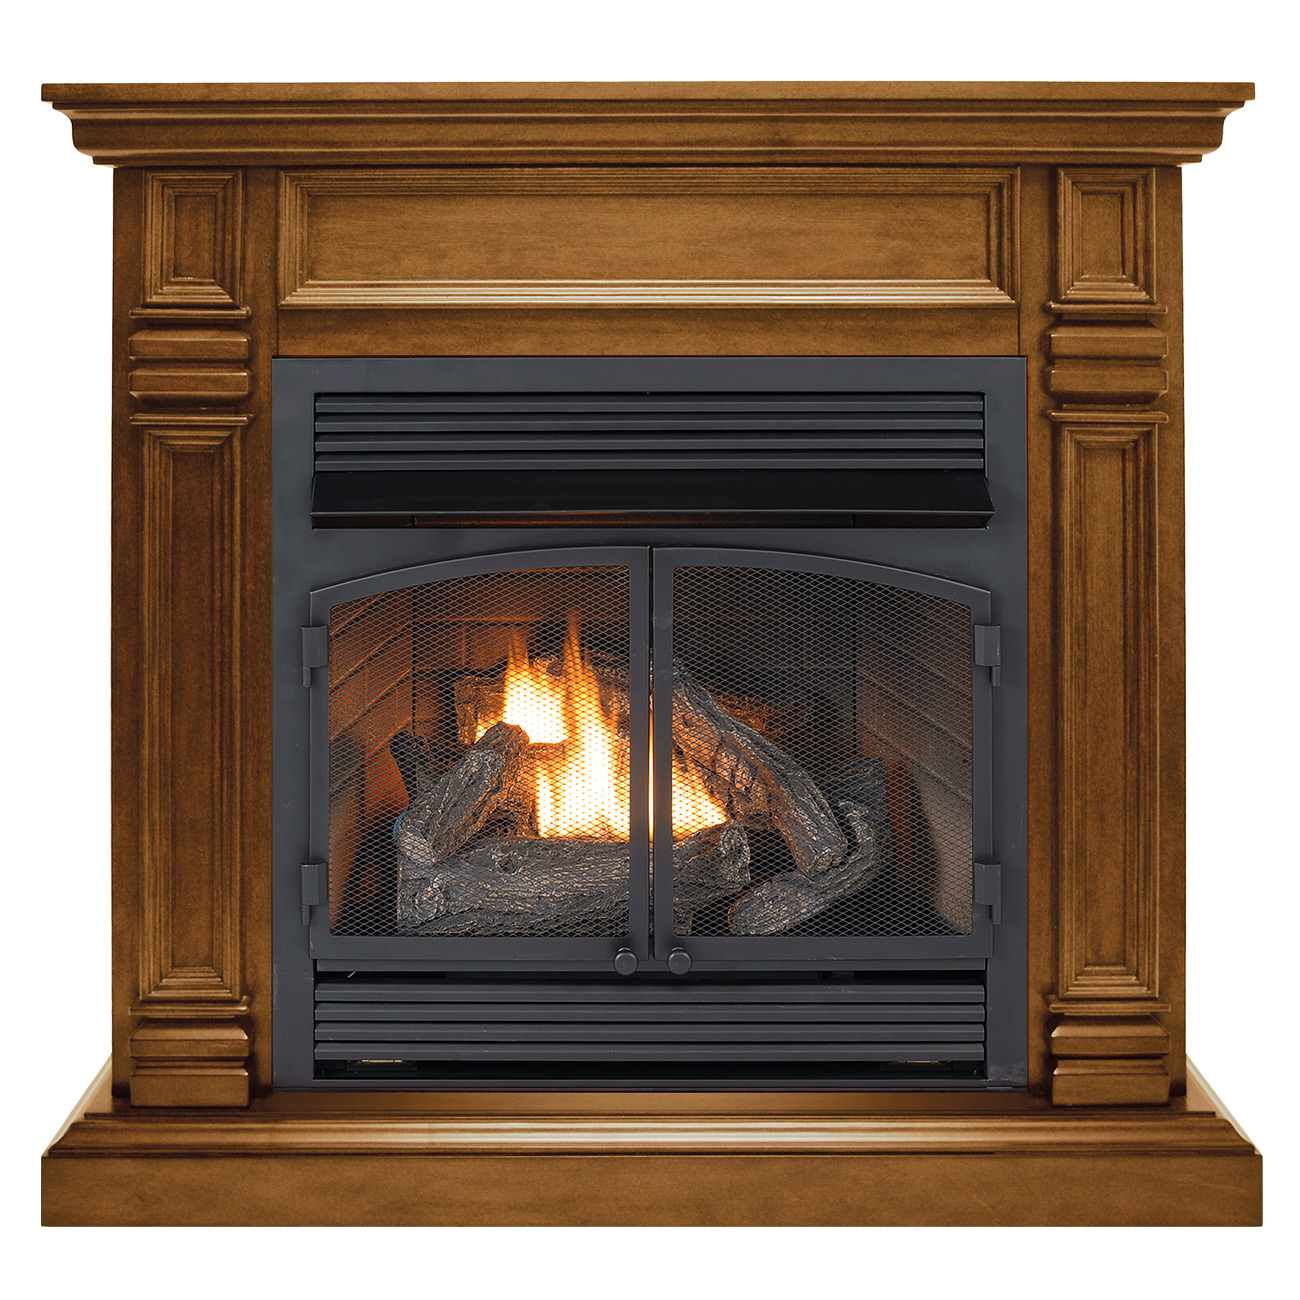 Ventless Fireplace: Ventless Fireplace System Dual Fuel Technology Apple Spice